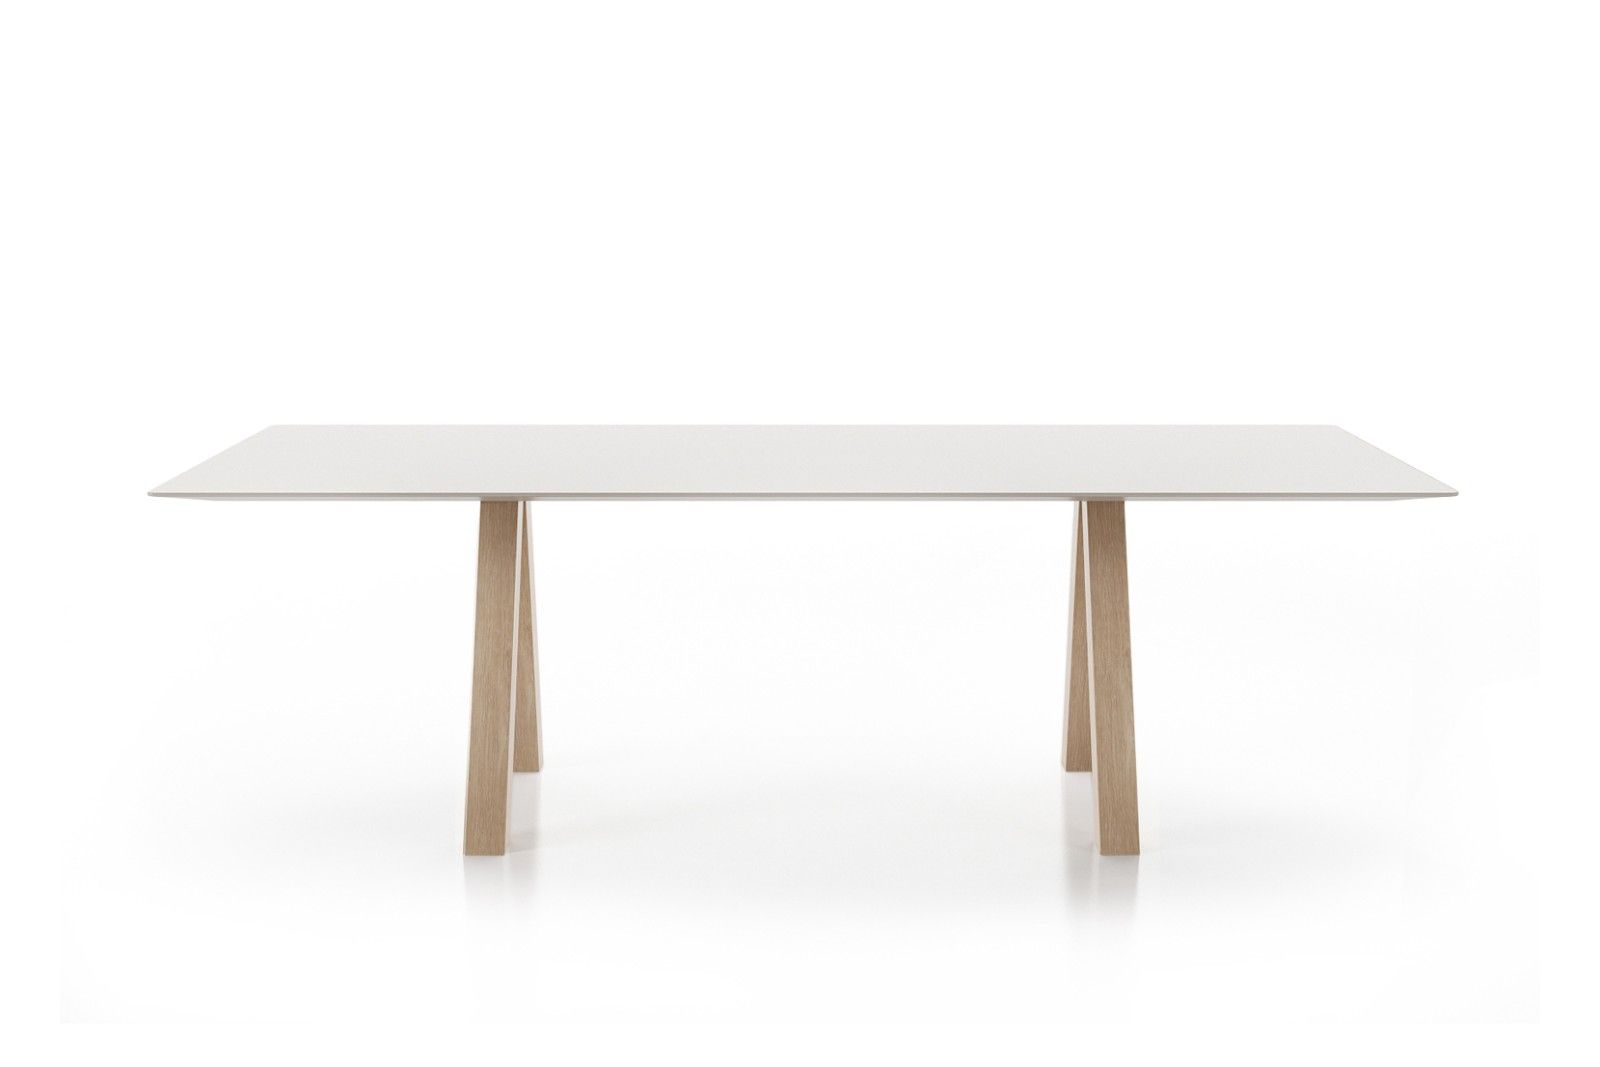 Table Extensible Design Italien trestle simple table matt oak, white ral 9003, 240w x 90d x